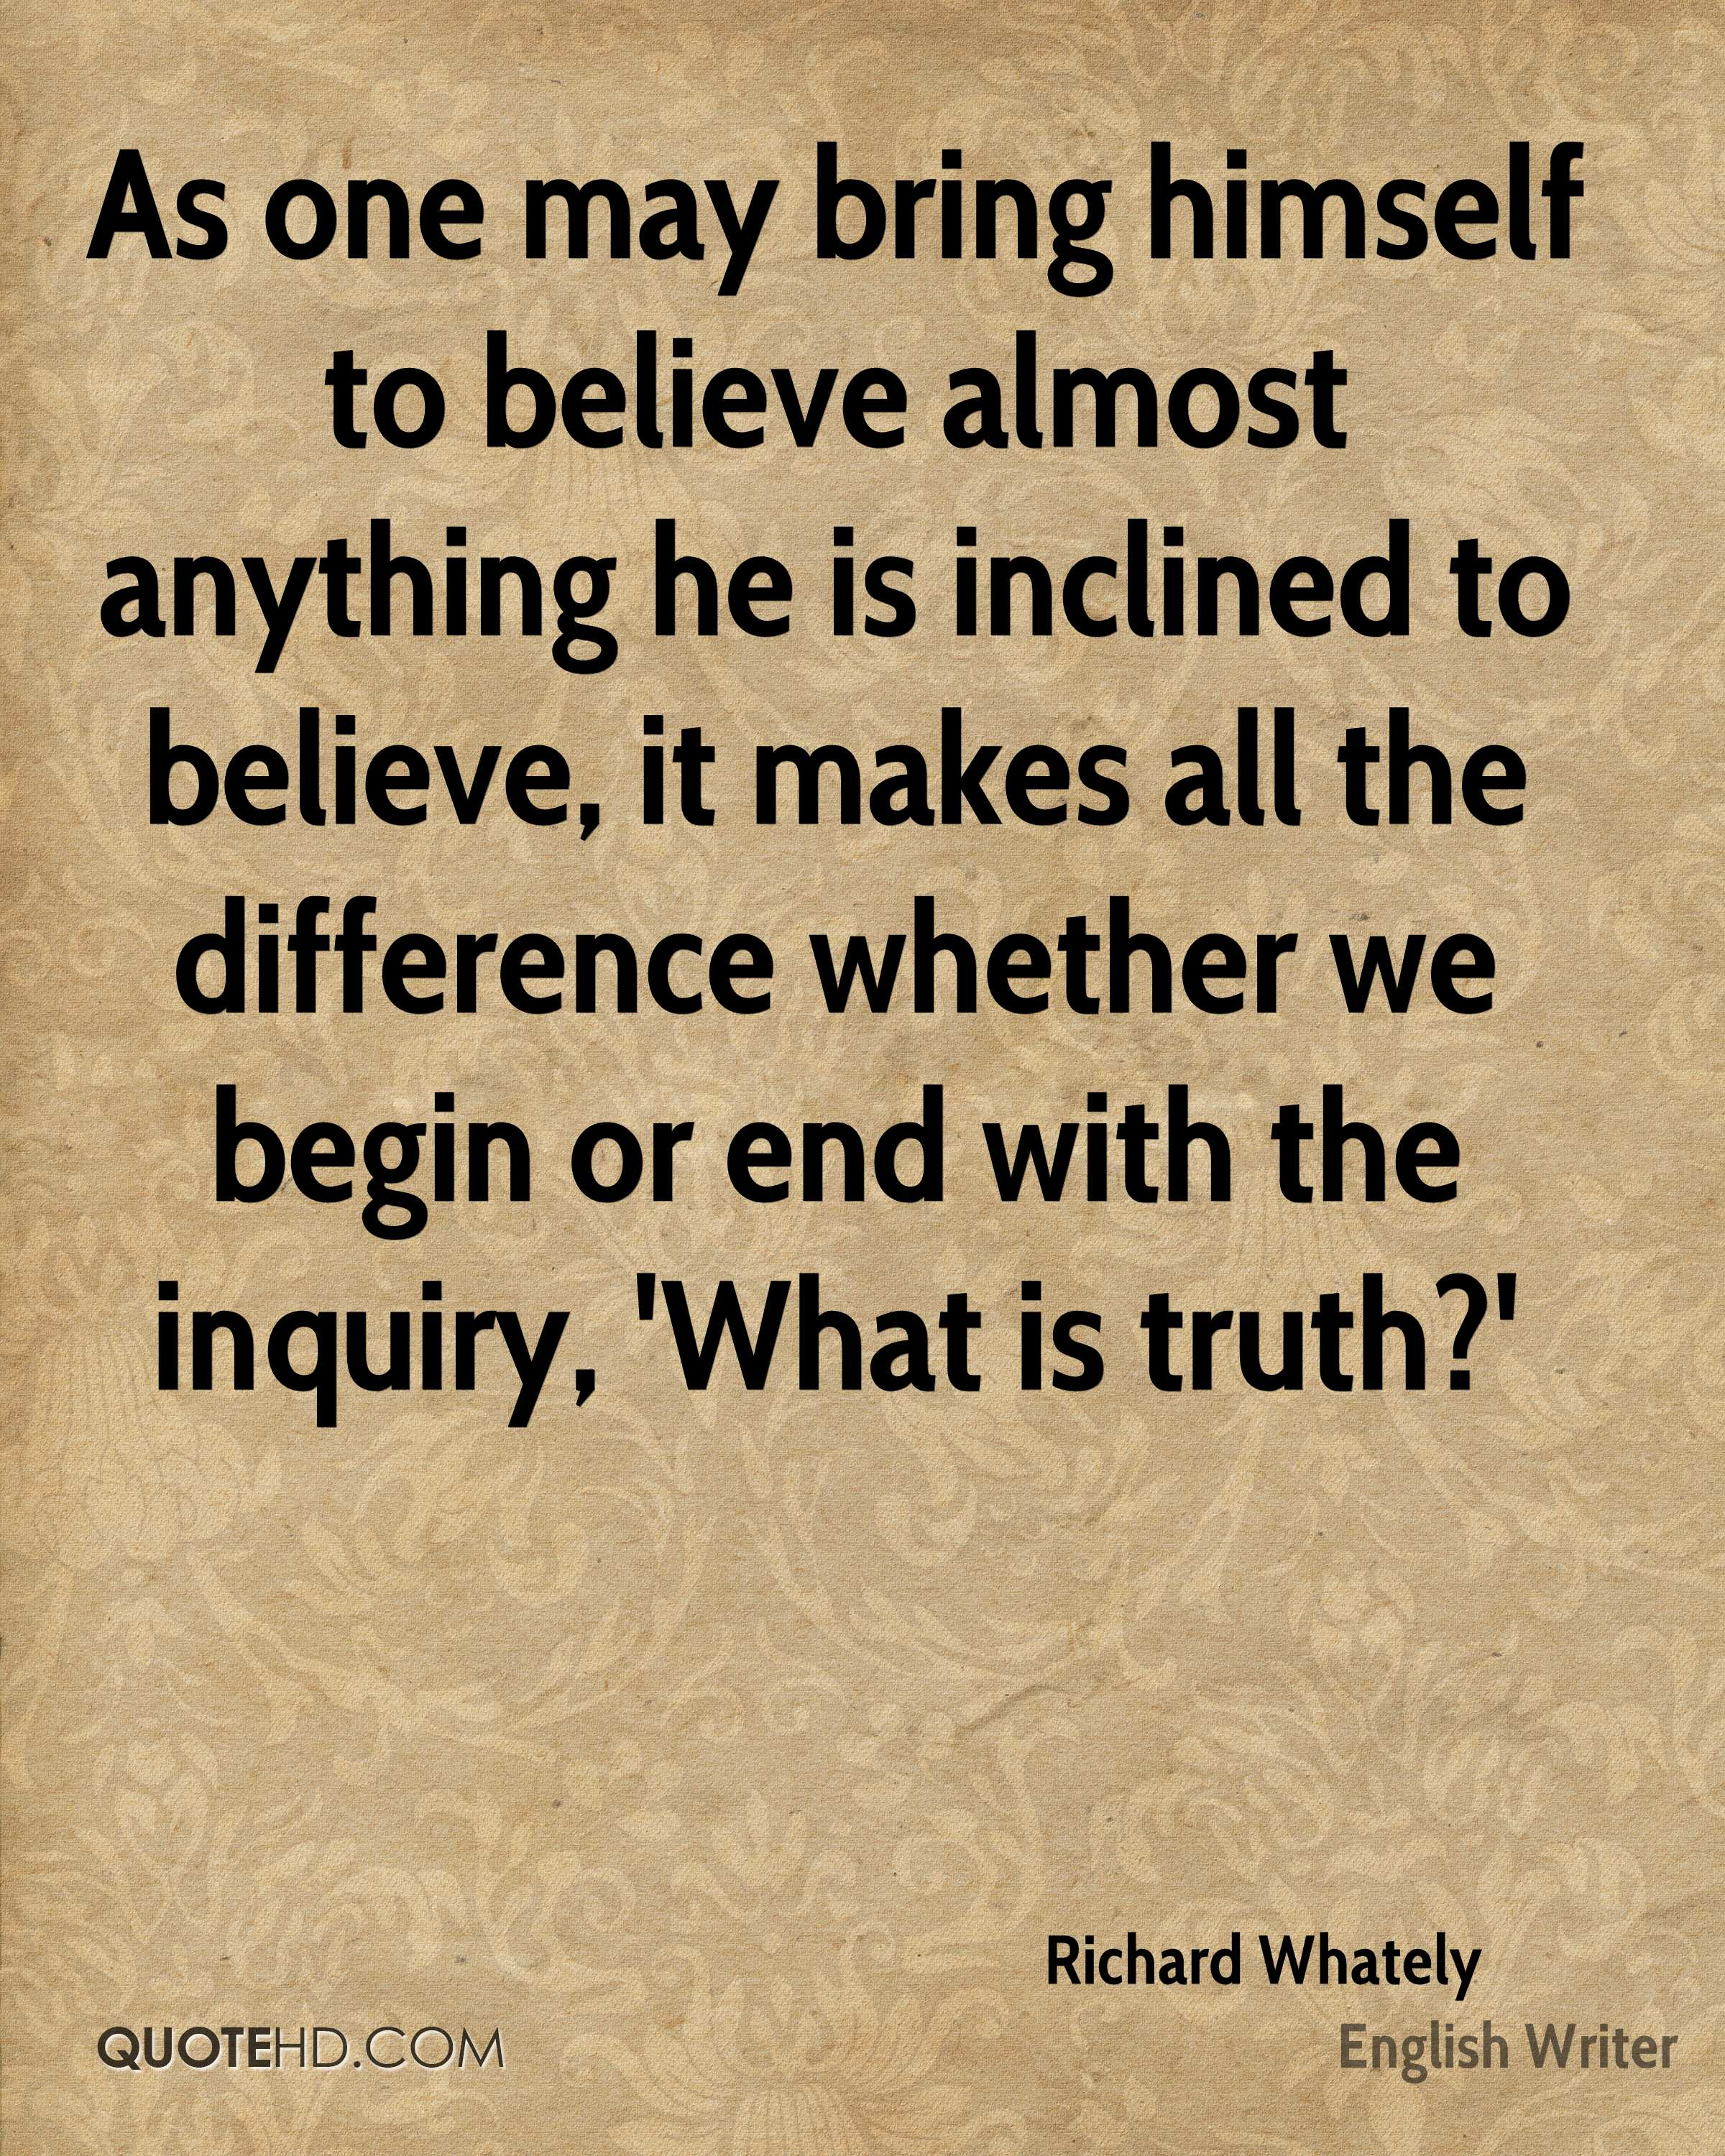 As one may bring himself to believe almost anything he is inclined to believe, it makes all the difference whether we begin or end with the inquiry, 'What is truth?'